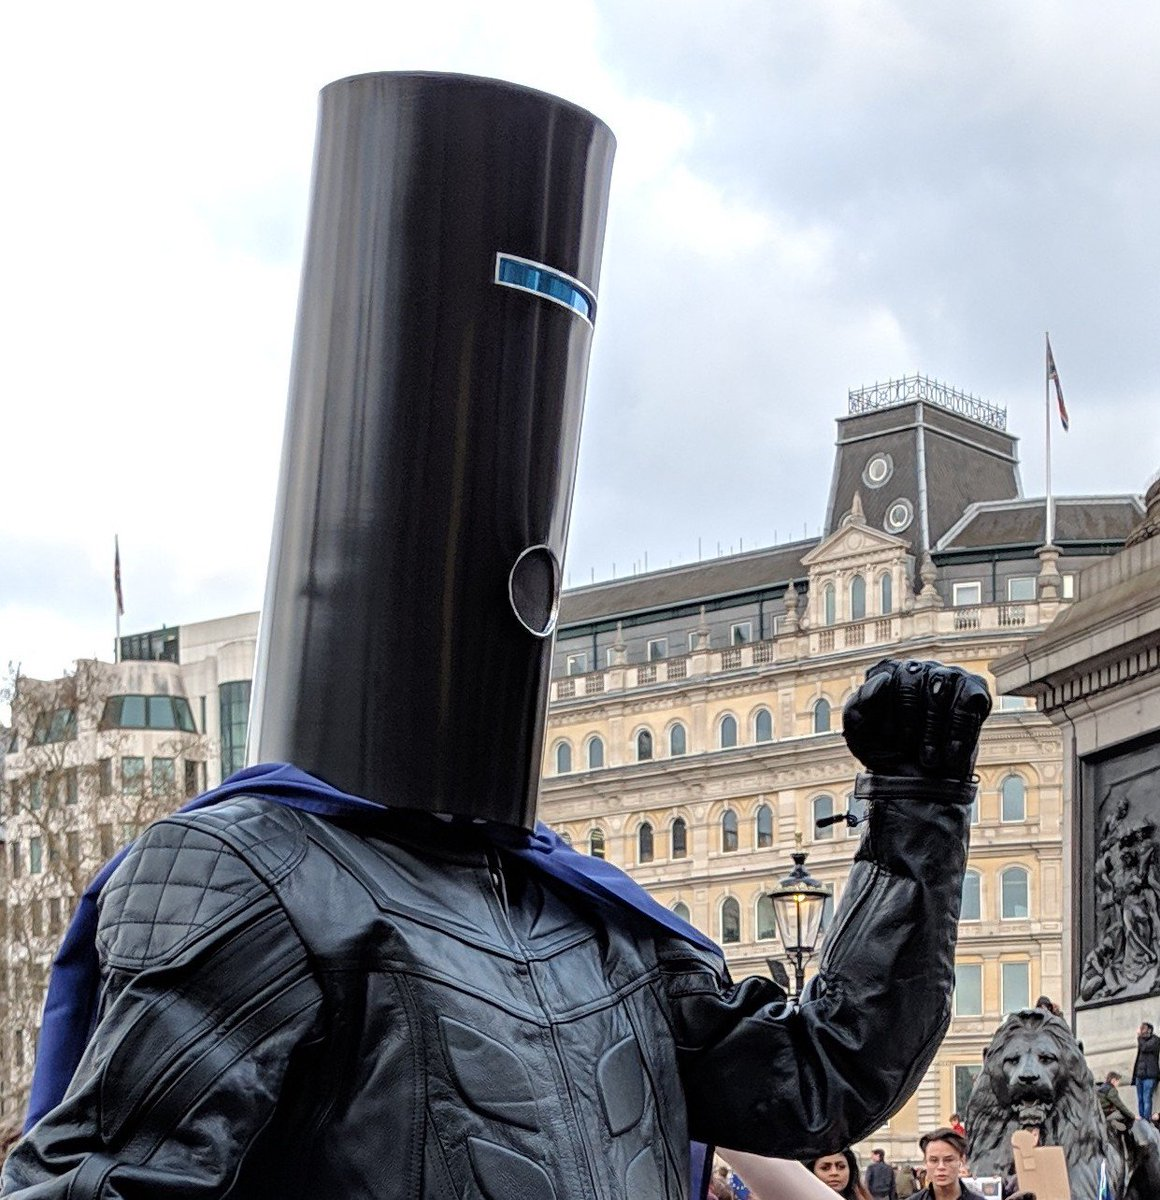 BREAKING NEWS: Since so many have begged me to run against Nigel Farage in the EU Parliament Election on 23 May, a clever Earthling set up this link for you to fund the cost of the pricey deposit. Will I agree to run if the goal is met?  MY ANSWER:  YES!   https://www.gofundme.com/lord-buckethead-vs-farage-in-the-eu-mep-elections …